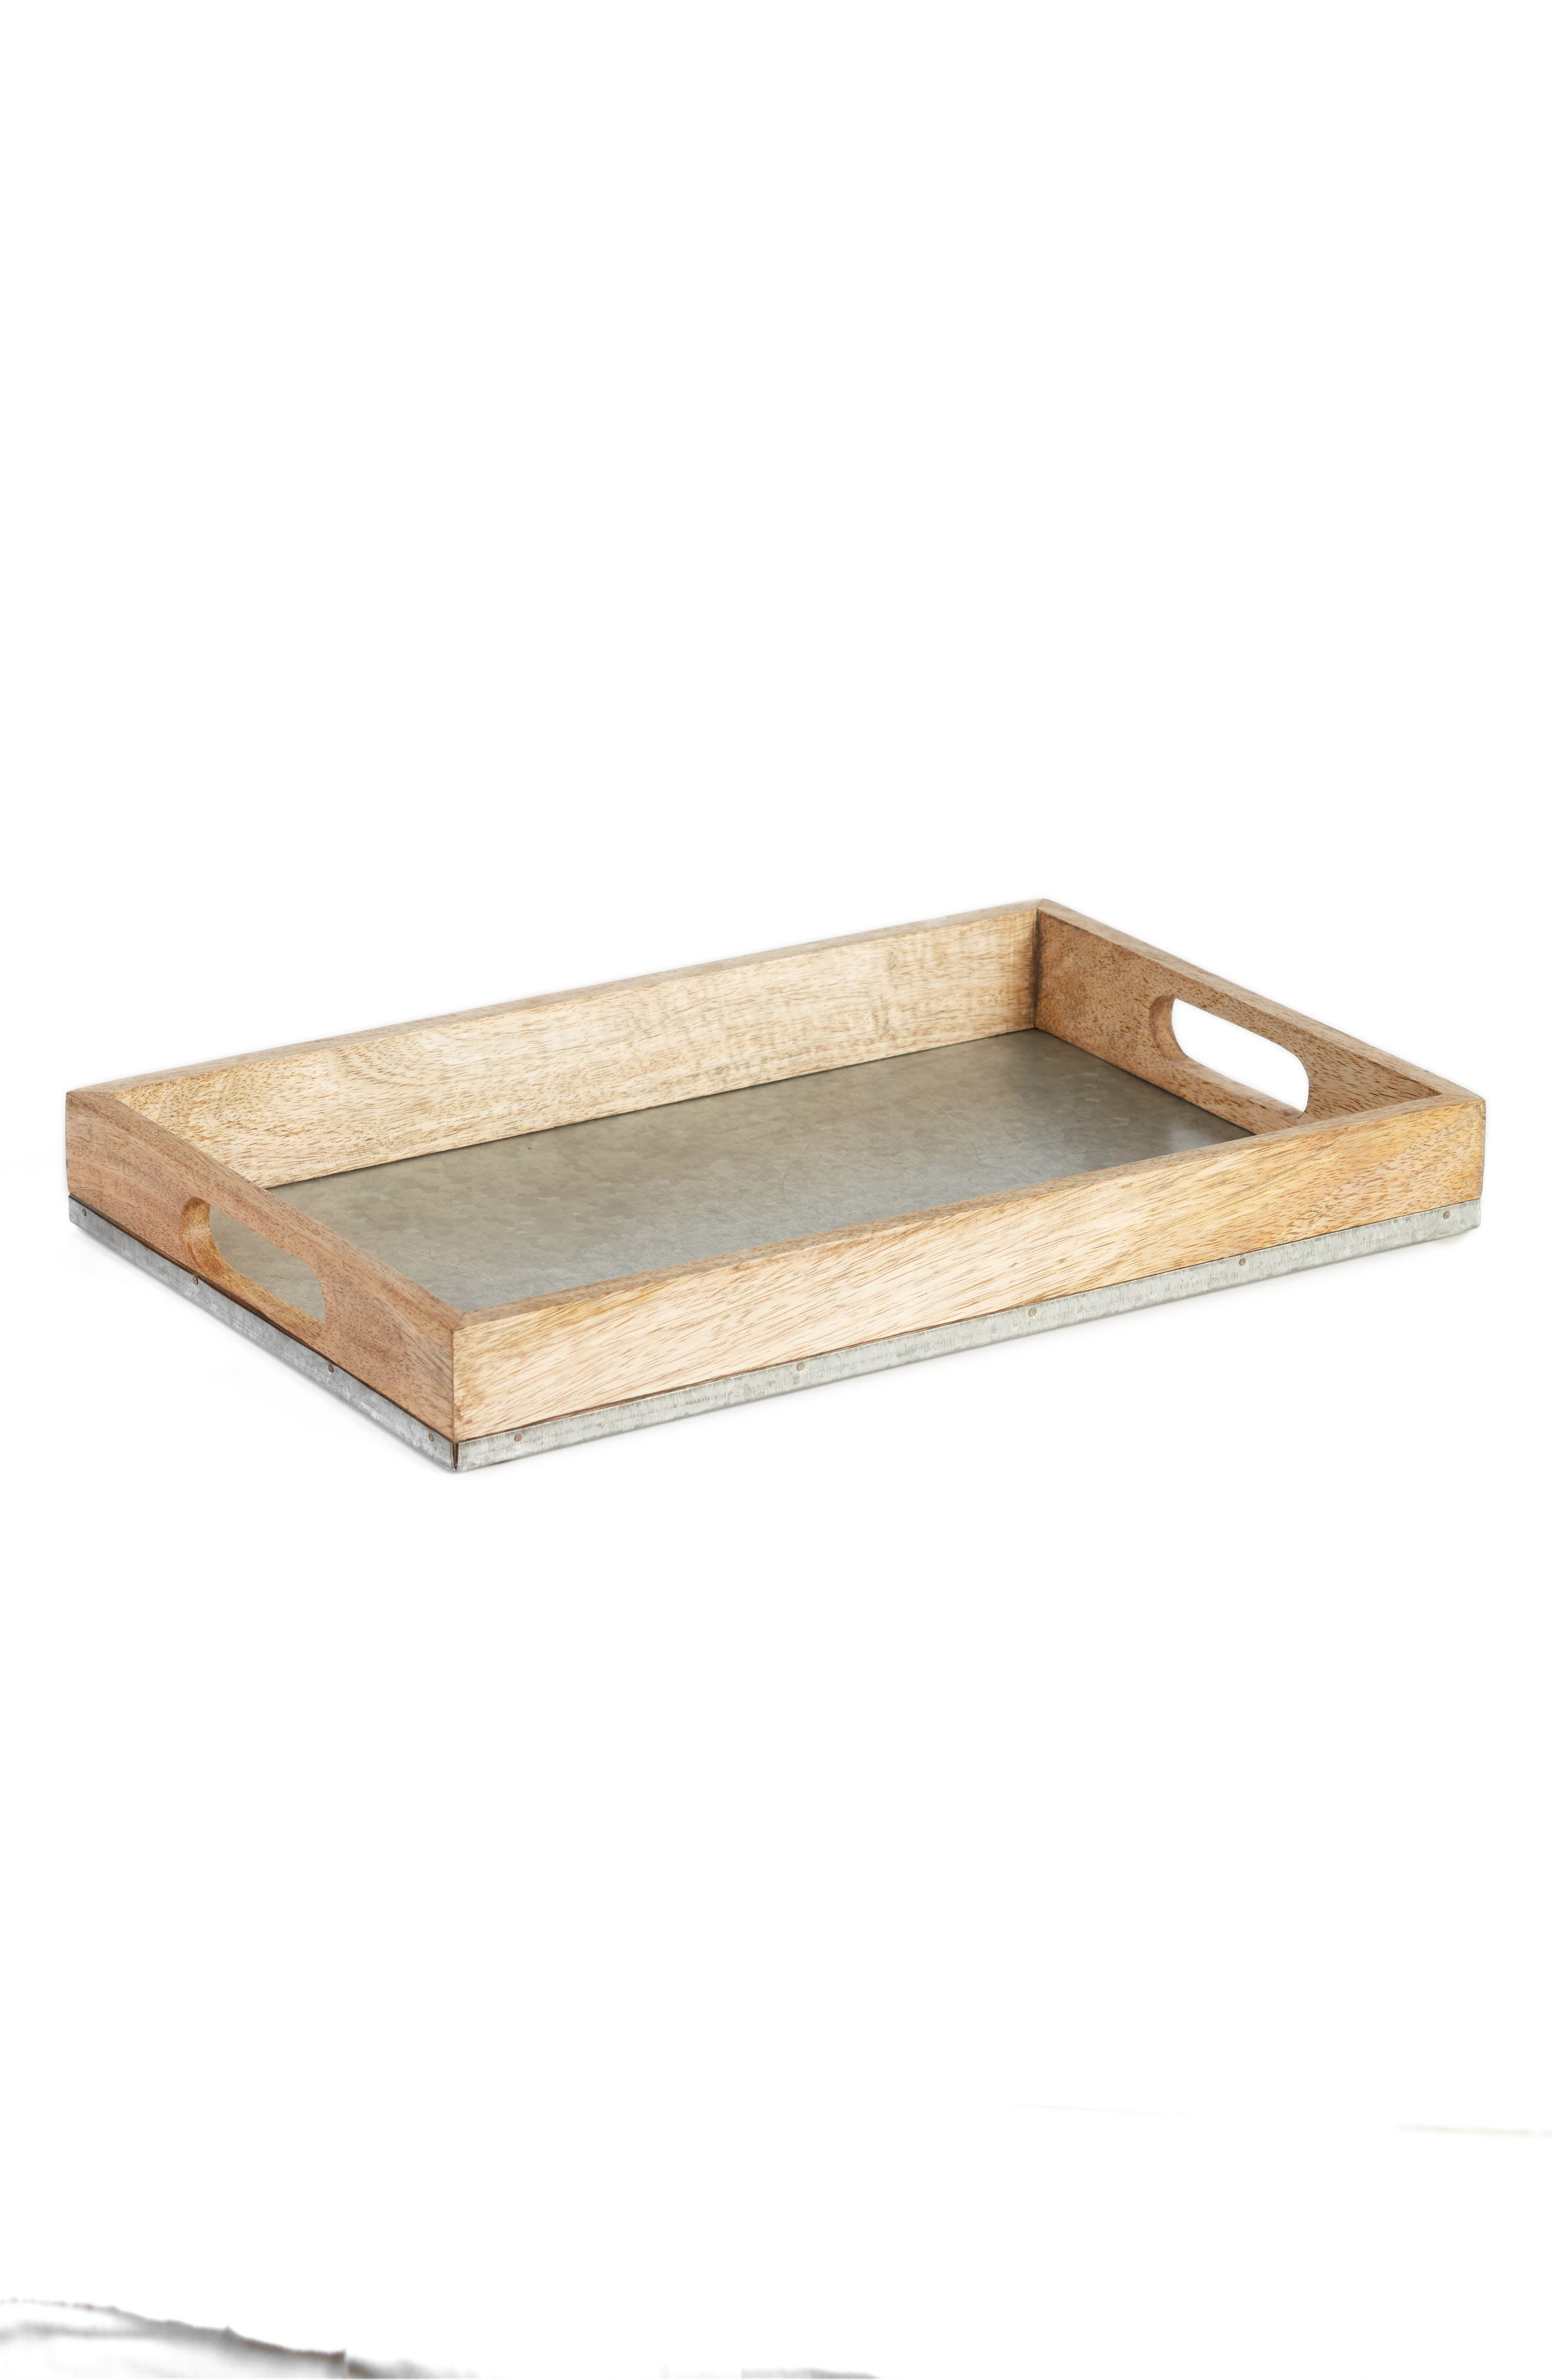 Alternate Image 1 Selected - Nordstrom at Home Wood & Galvanized Iron Serving Tray